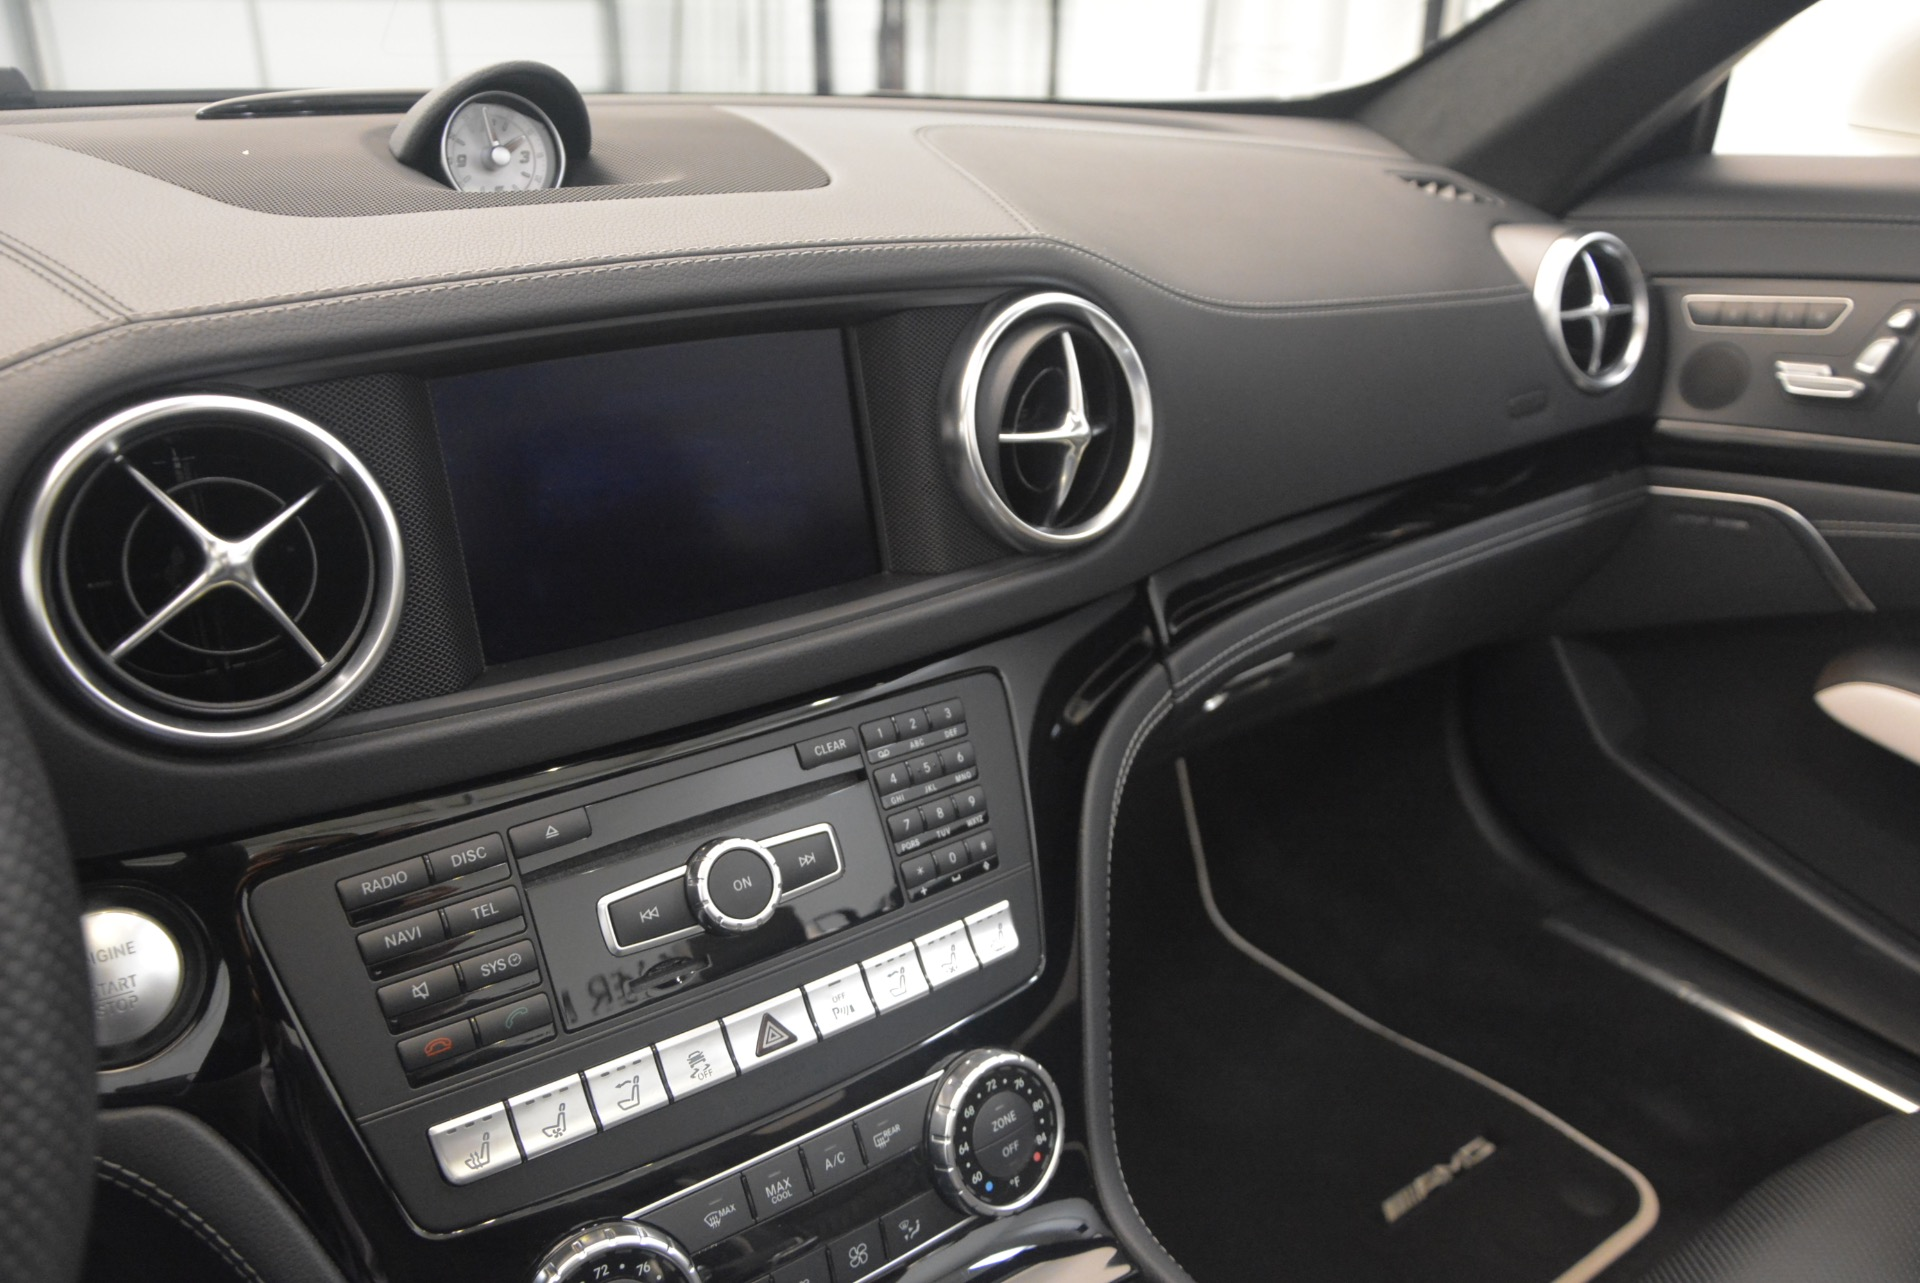 Used 2015 Mercedes Benz SL-Class SL 550 For Sale In Greenwich, CT 1261_p34